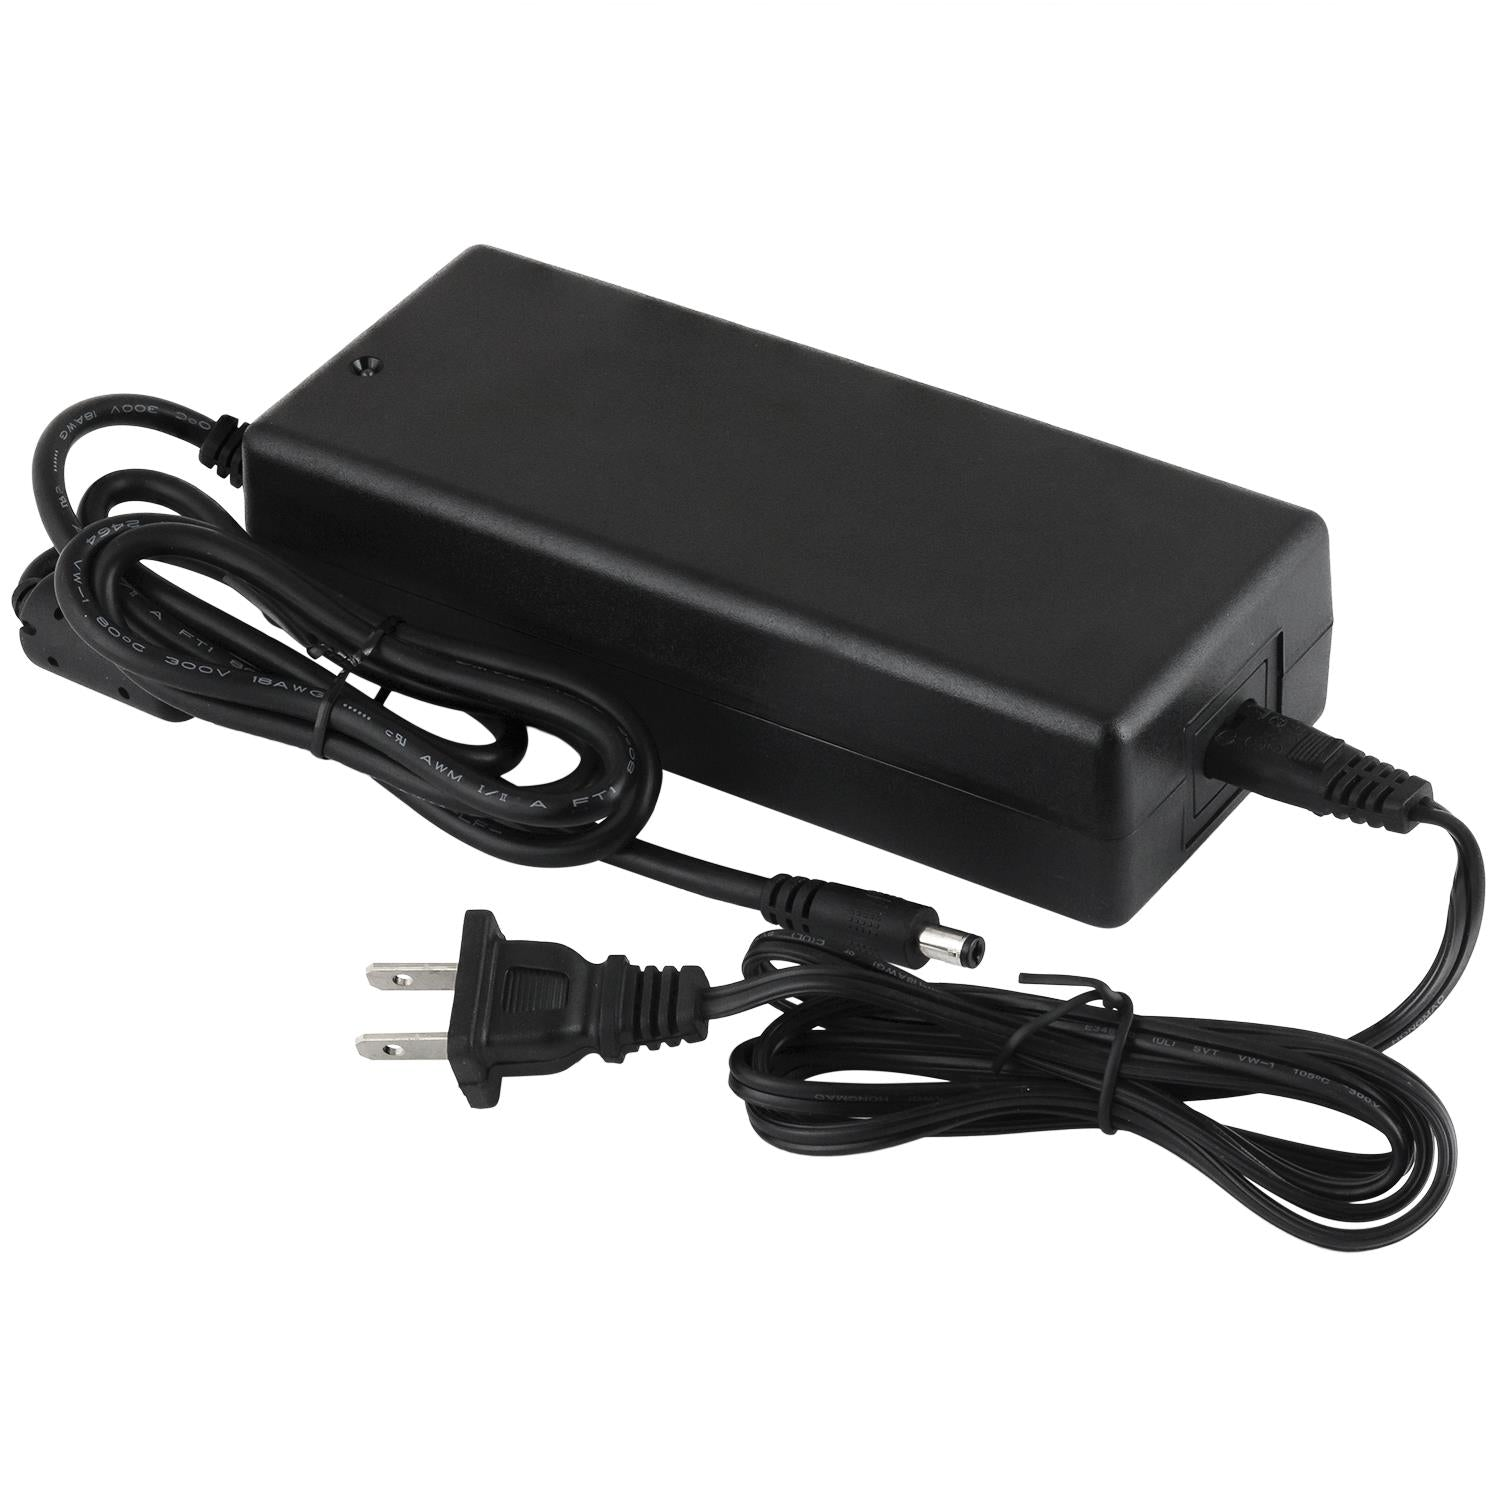 SUNLITE 120W 24V Power Adapter for Controller Desktop Power Adapter